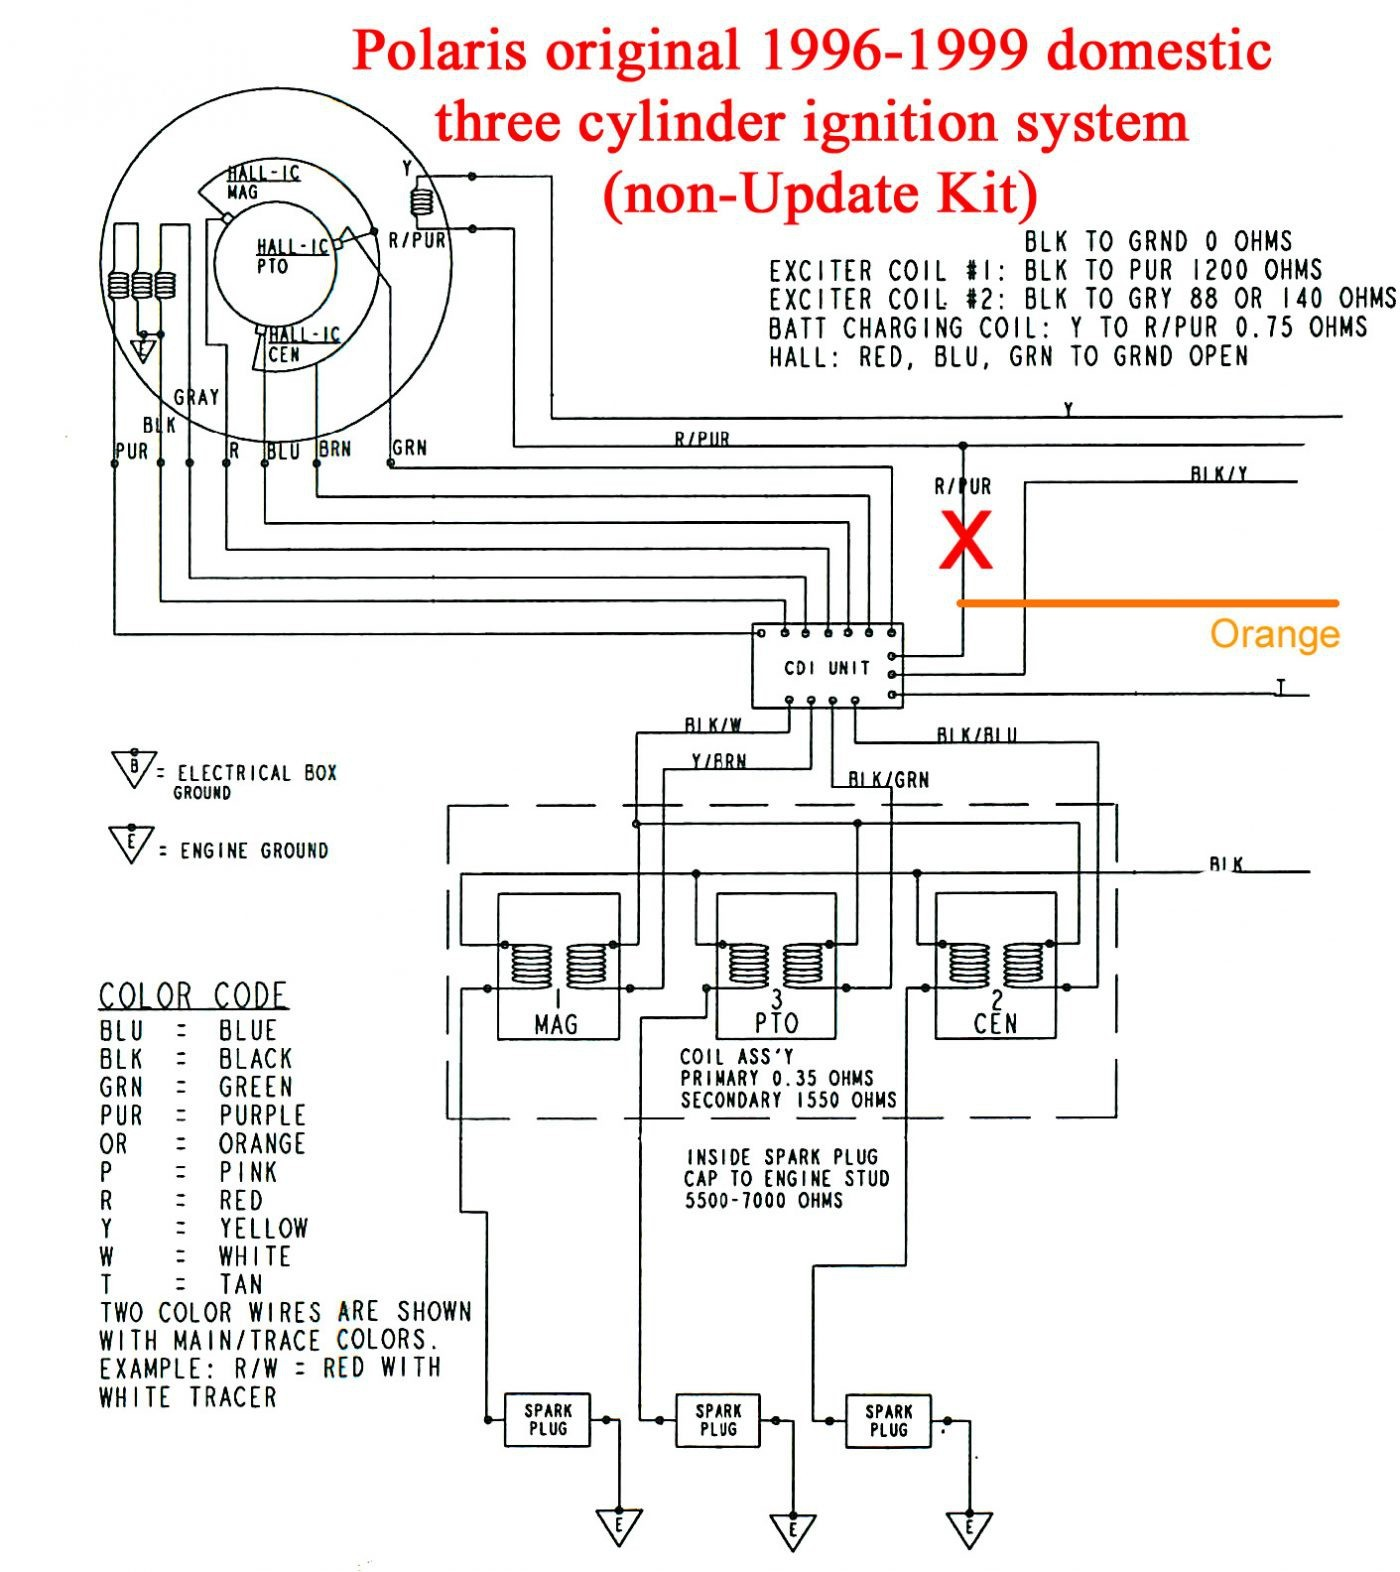 88 Chevy Coil Diagram Wiring Strategy Design Plan 79 1500 Ignition Tbi Schematics Rh Enr Green Com 98